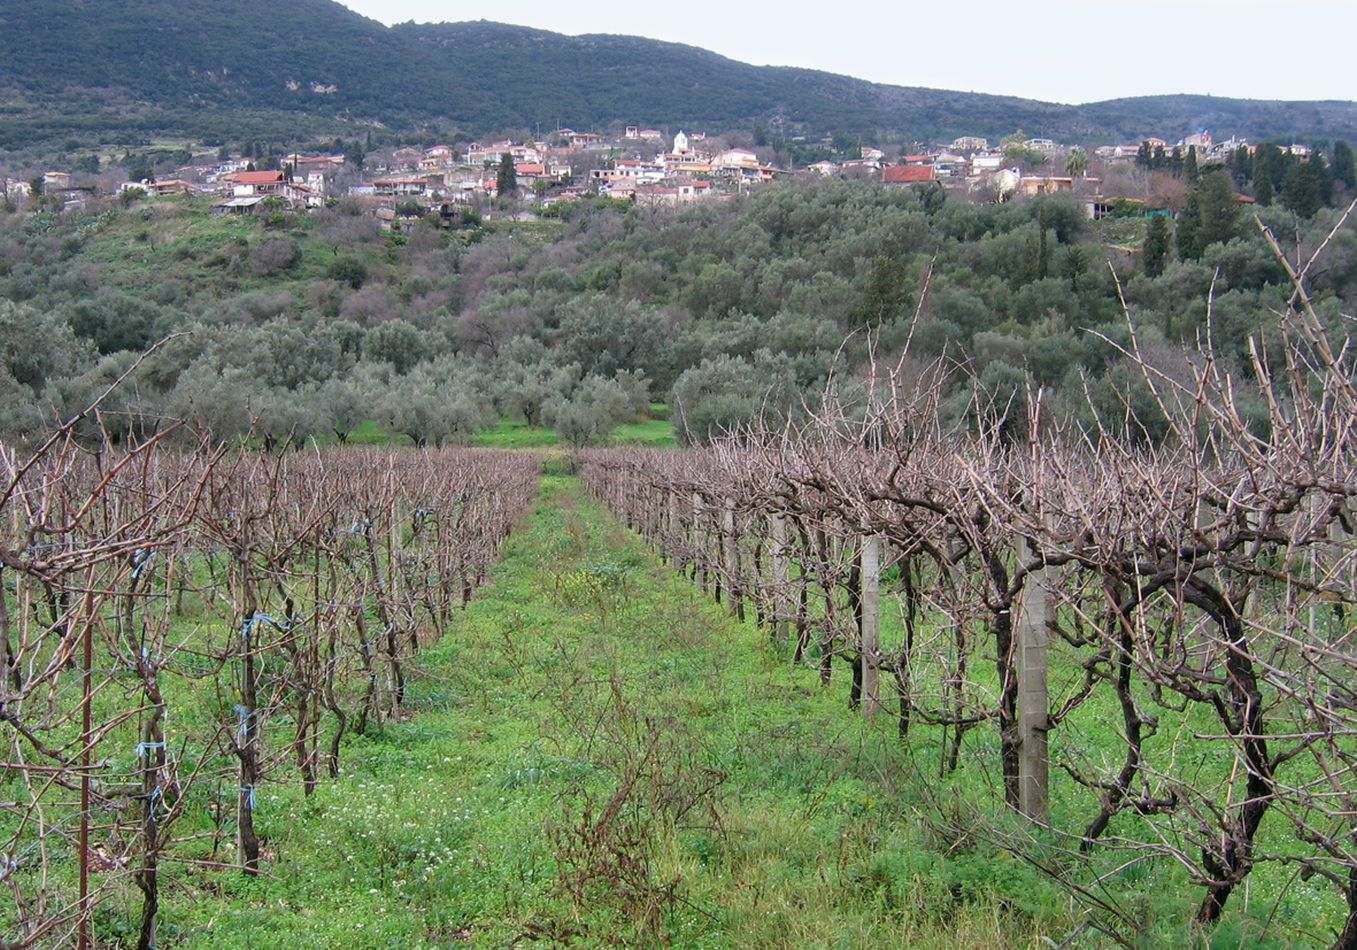 Vineyards in Agios Petros | Alternative activities in Lefkada